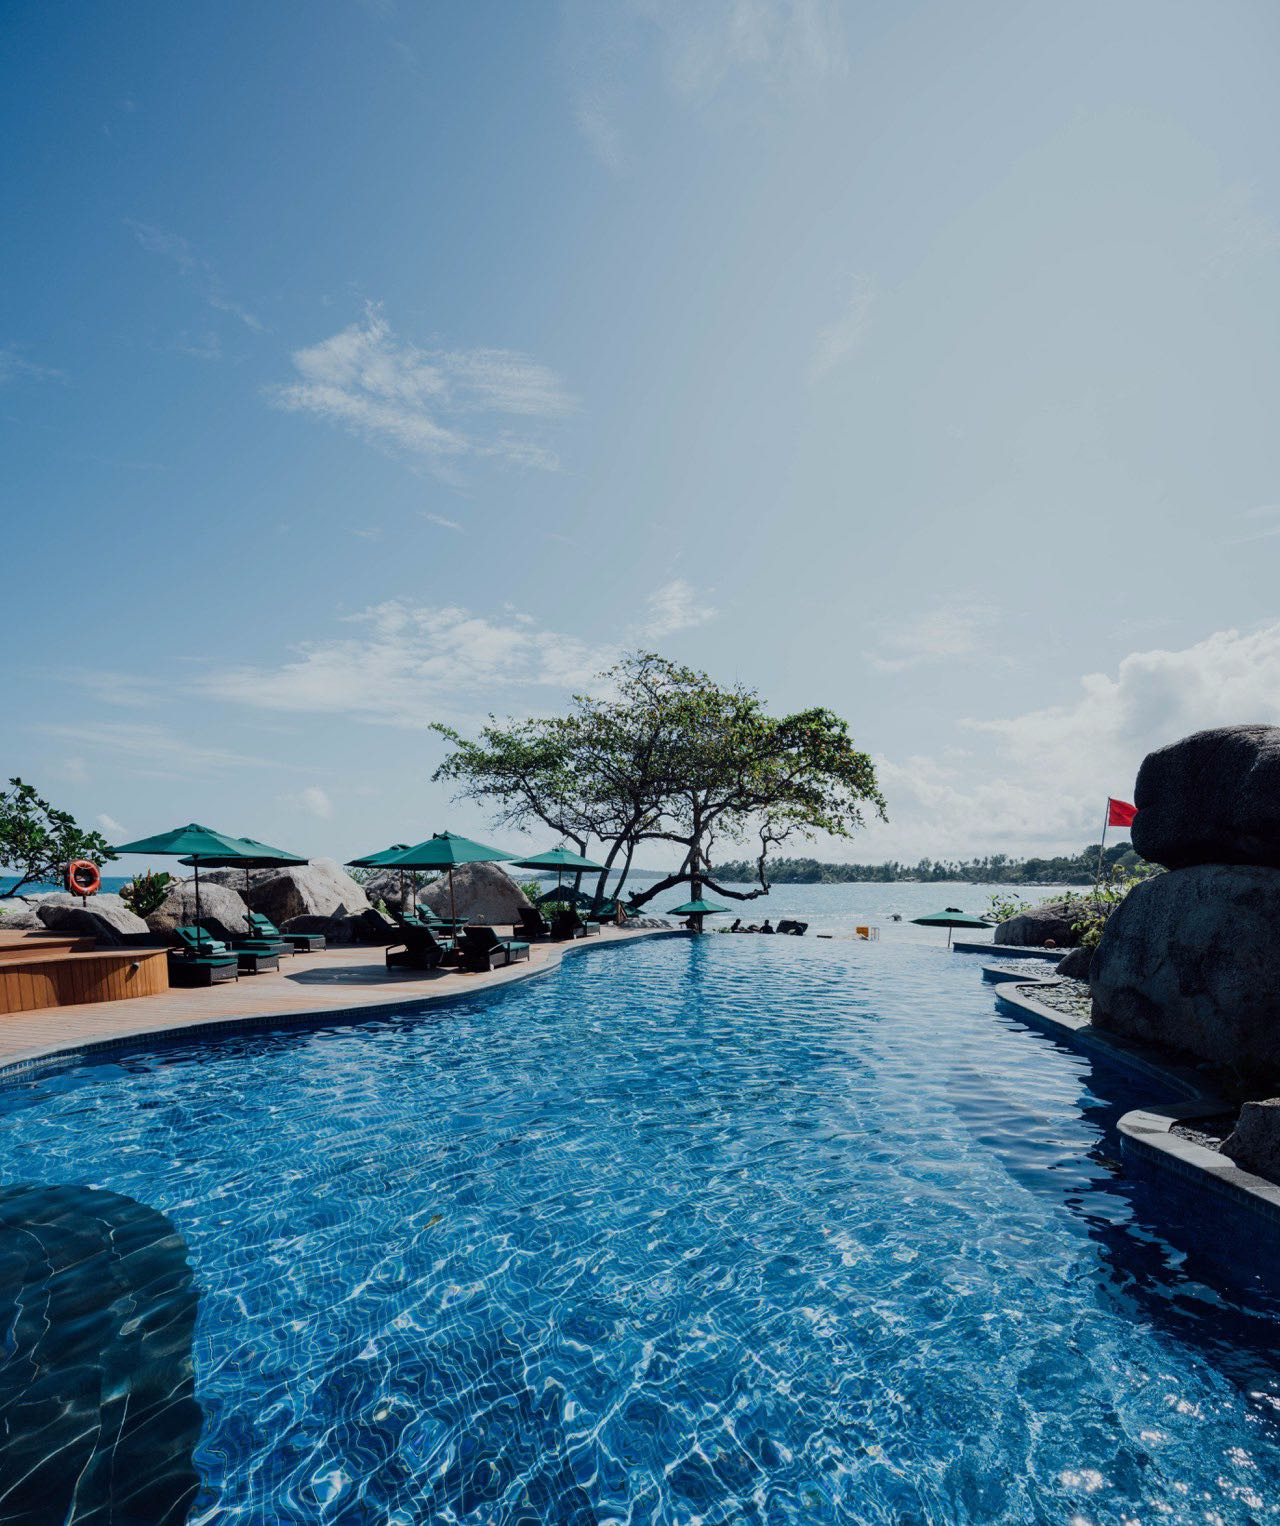 Resorts in Batam for the Perfect Getaway (Halal Options)